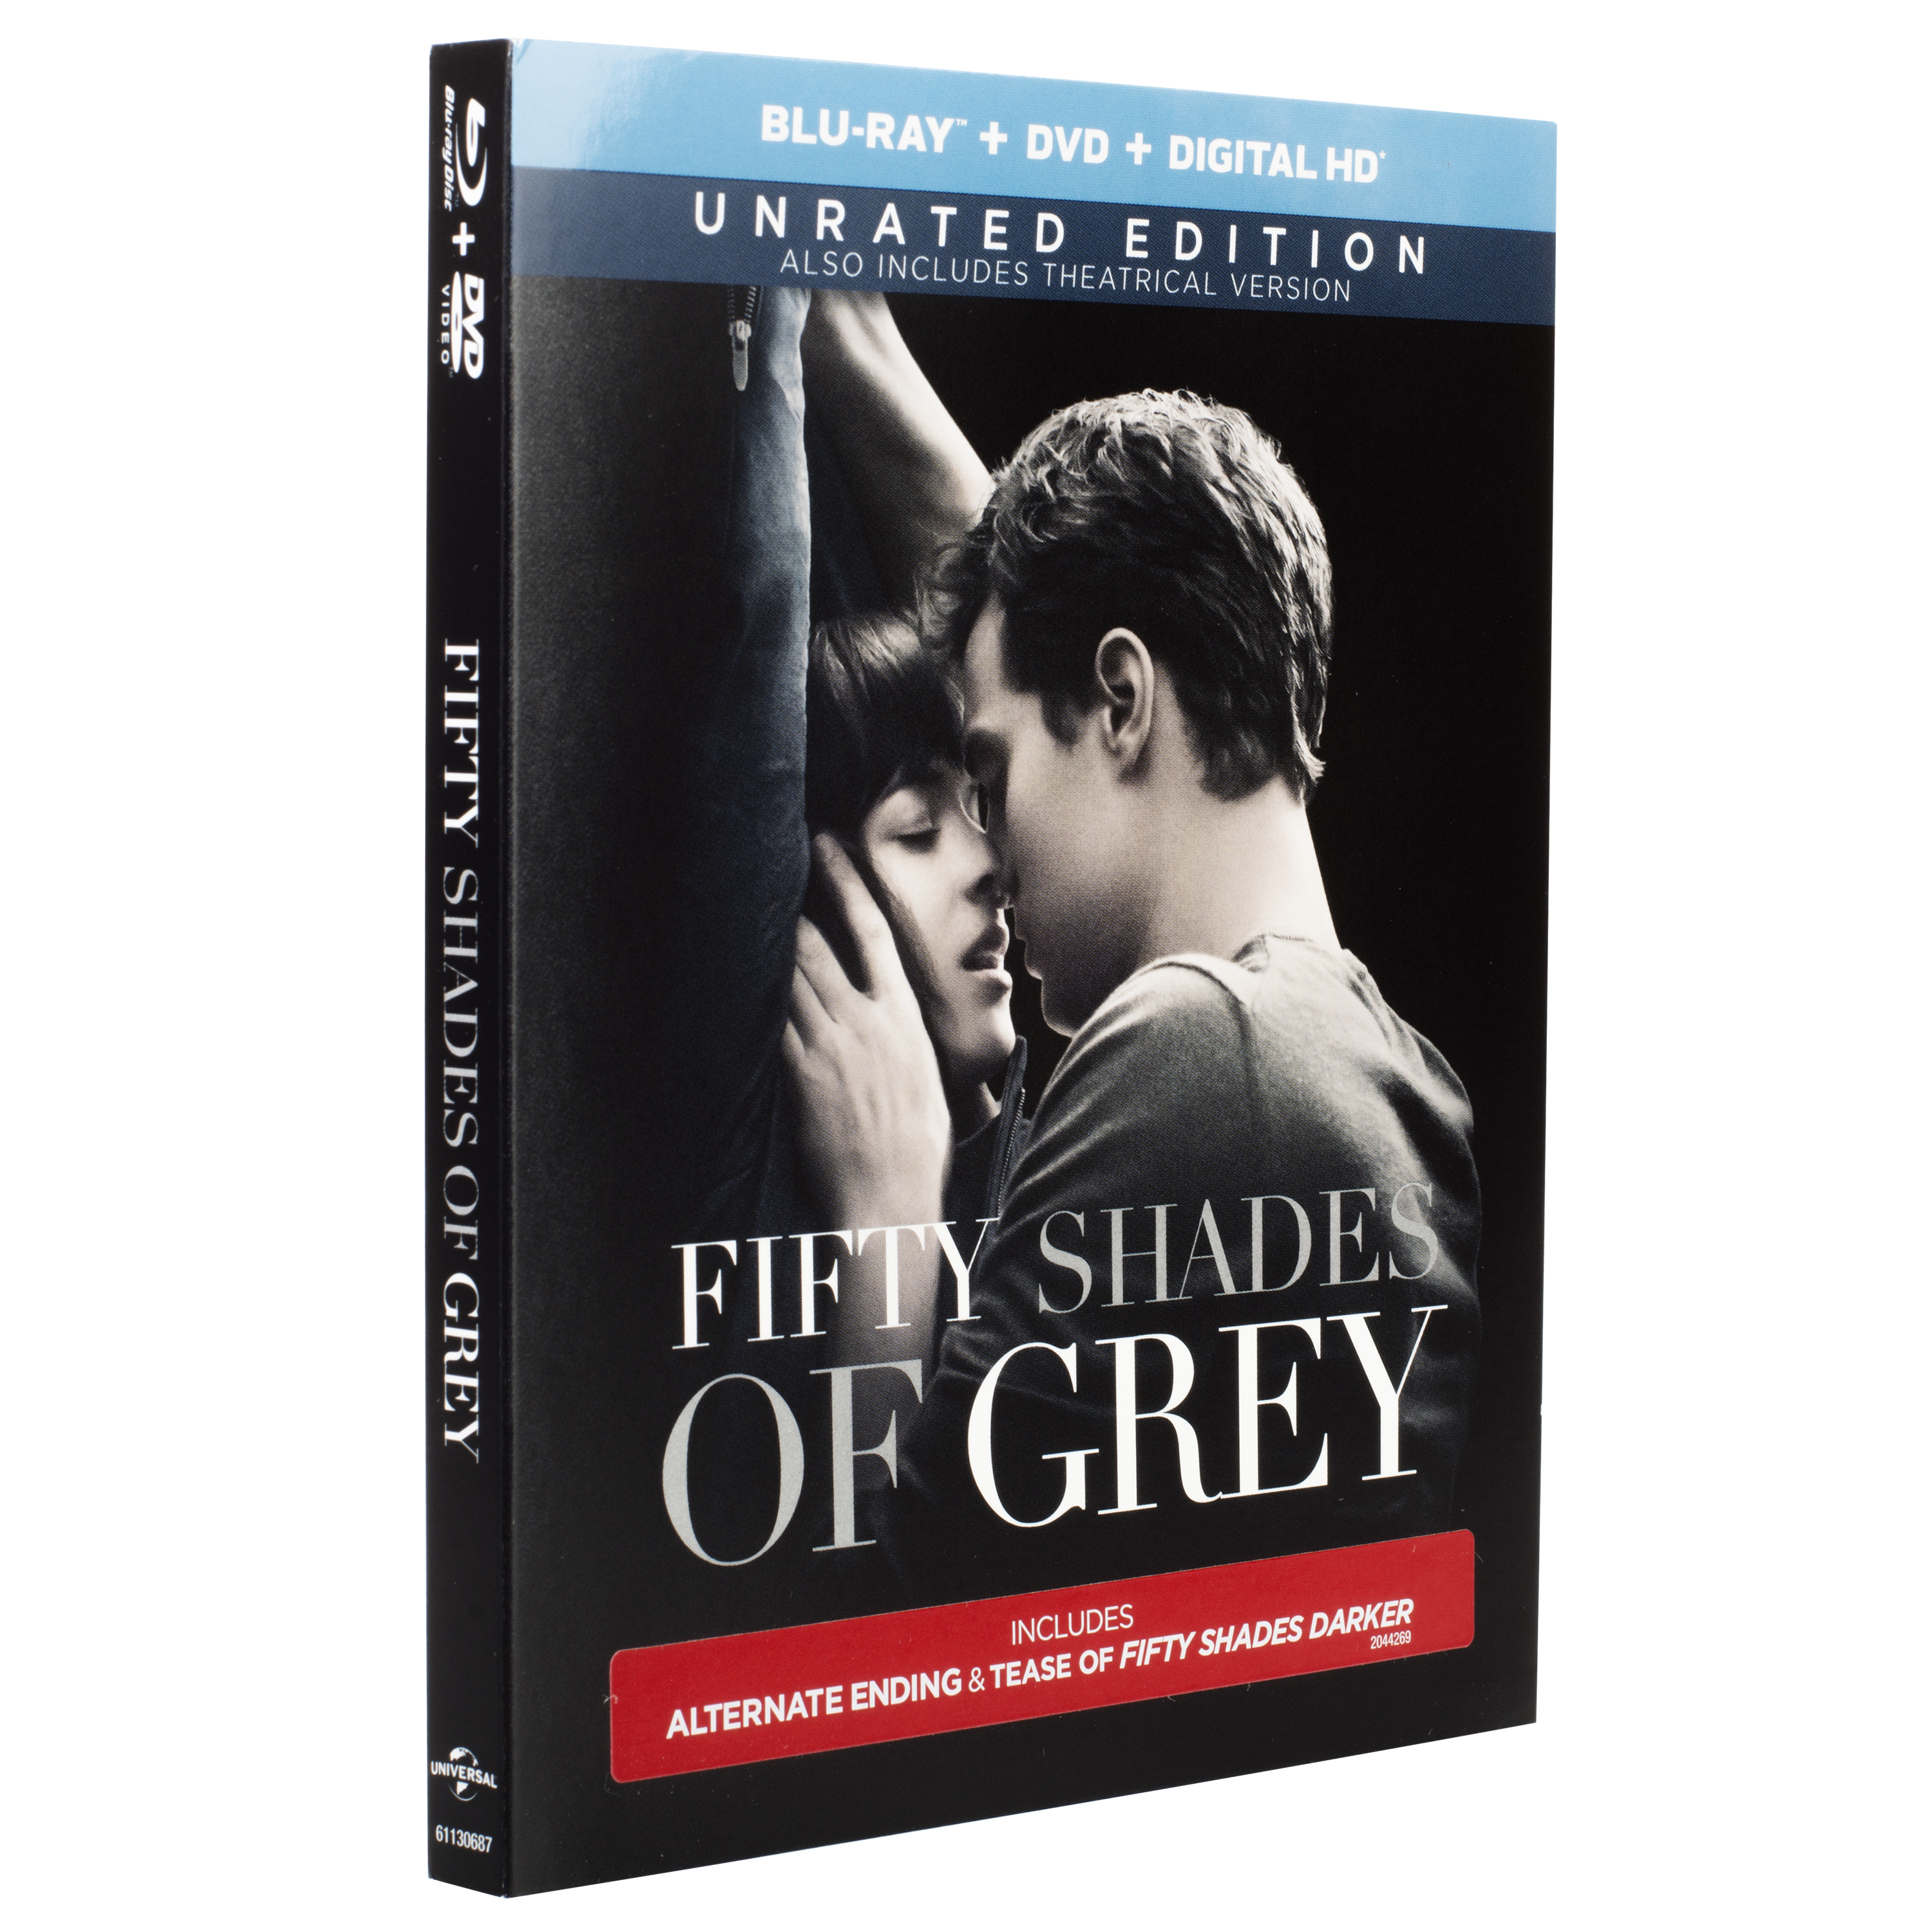 Fifty Shades Of Grey (Unrated) (Blu-ray + DVD + Digital HD)